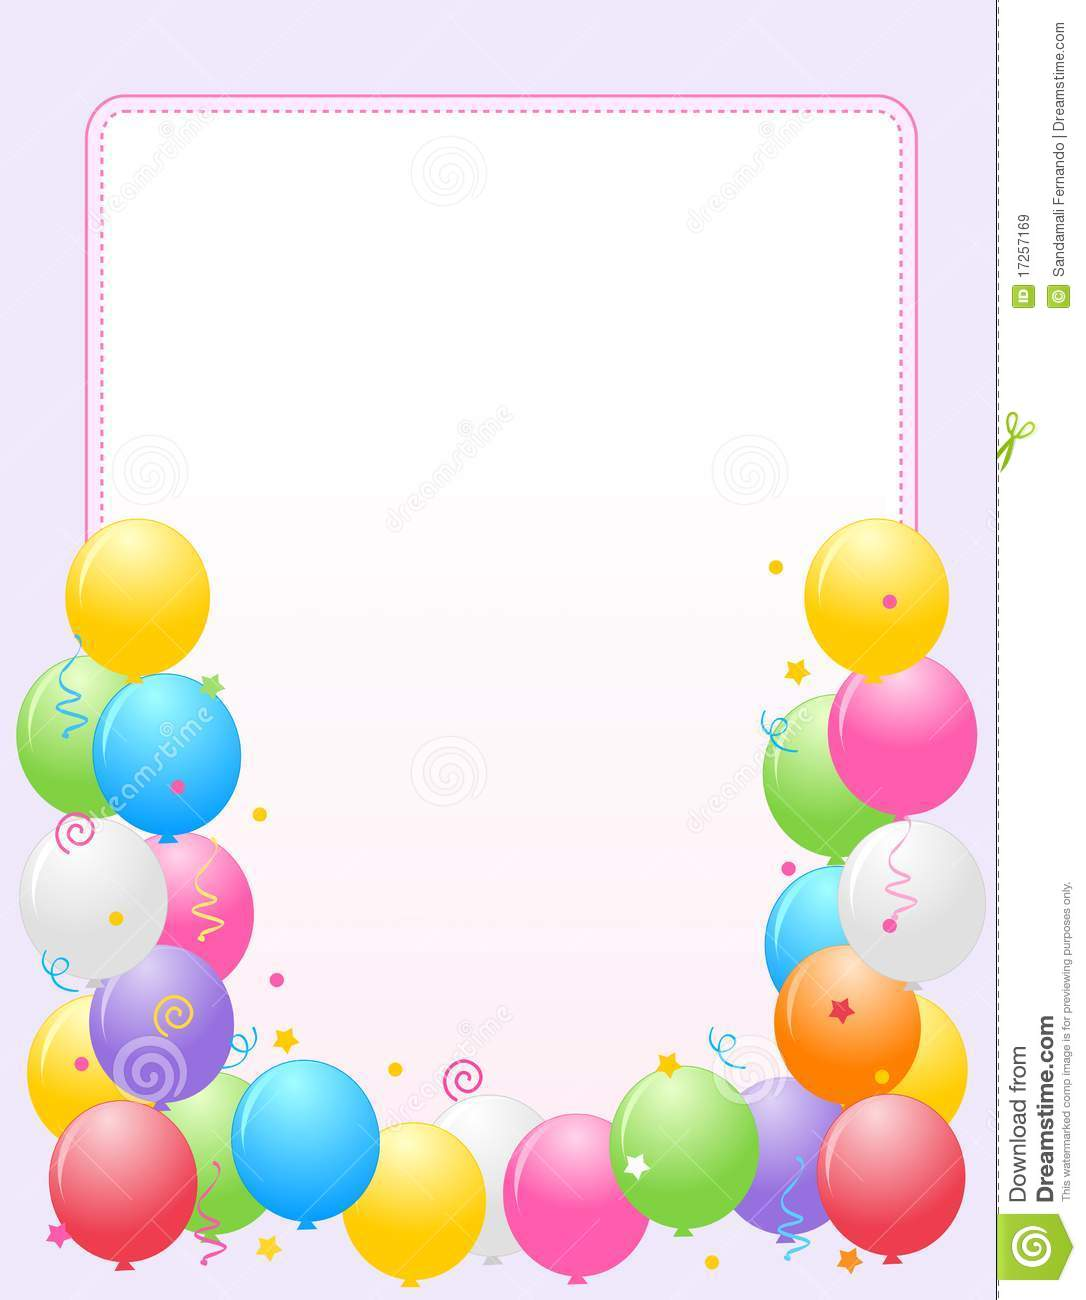 Birthday Party Wallpaper Background Wallpapersafari Colorful Balloons Border Frame Illustration 17257169 Megapixl